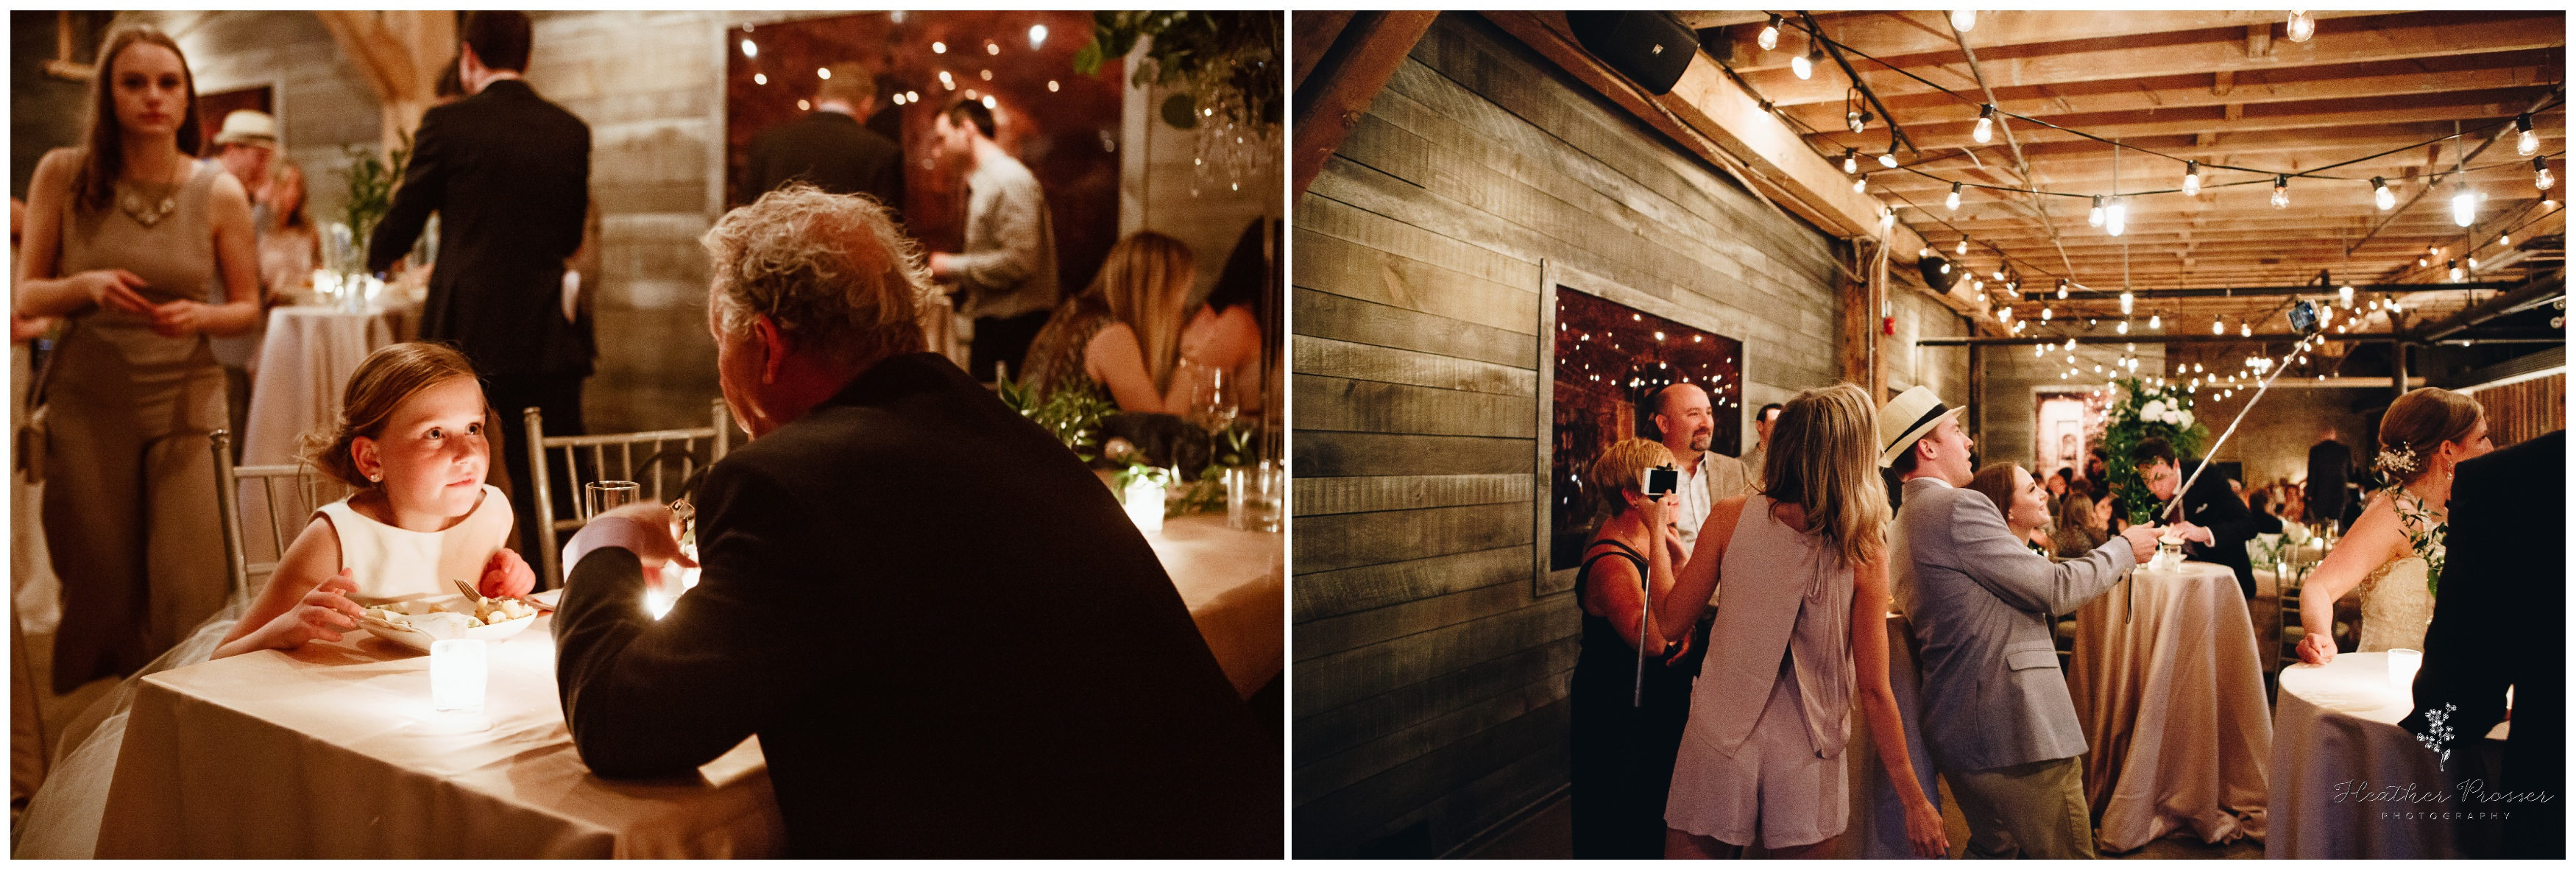 Toronto Distillery District Wedding_2606.jpg